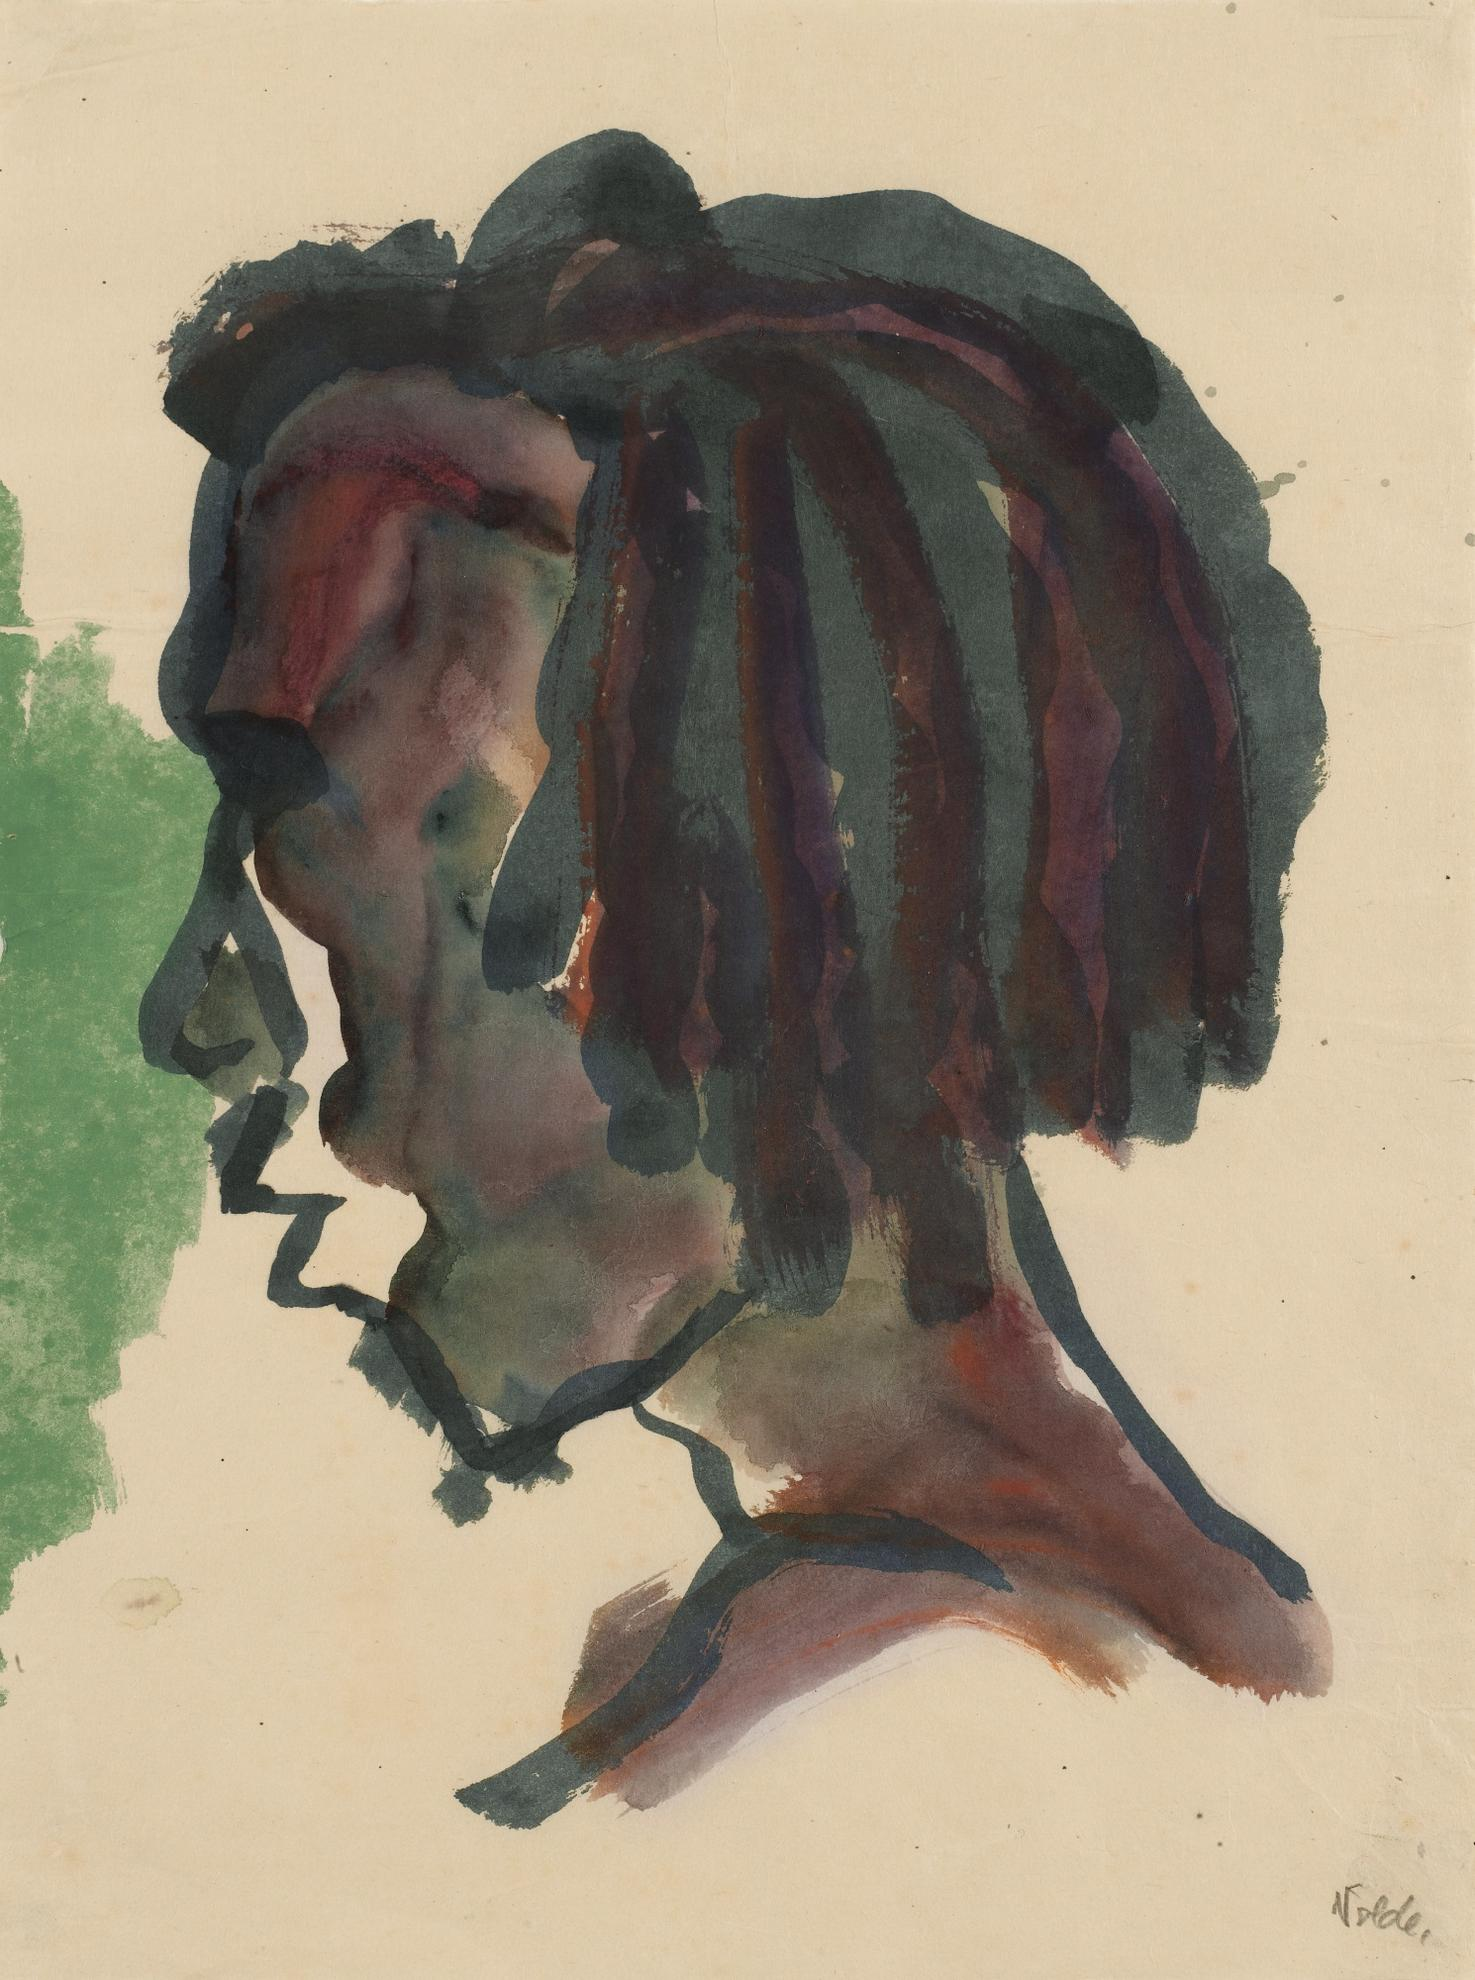 Emil Nolde-Kopf Eines Jungen Sudsee-Insulaners (Kopf Im Profil Nach Links) (Head Of A Young South Sea Islander (Head In Profile Turned To The Left))-1914